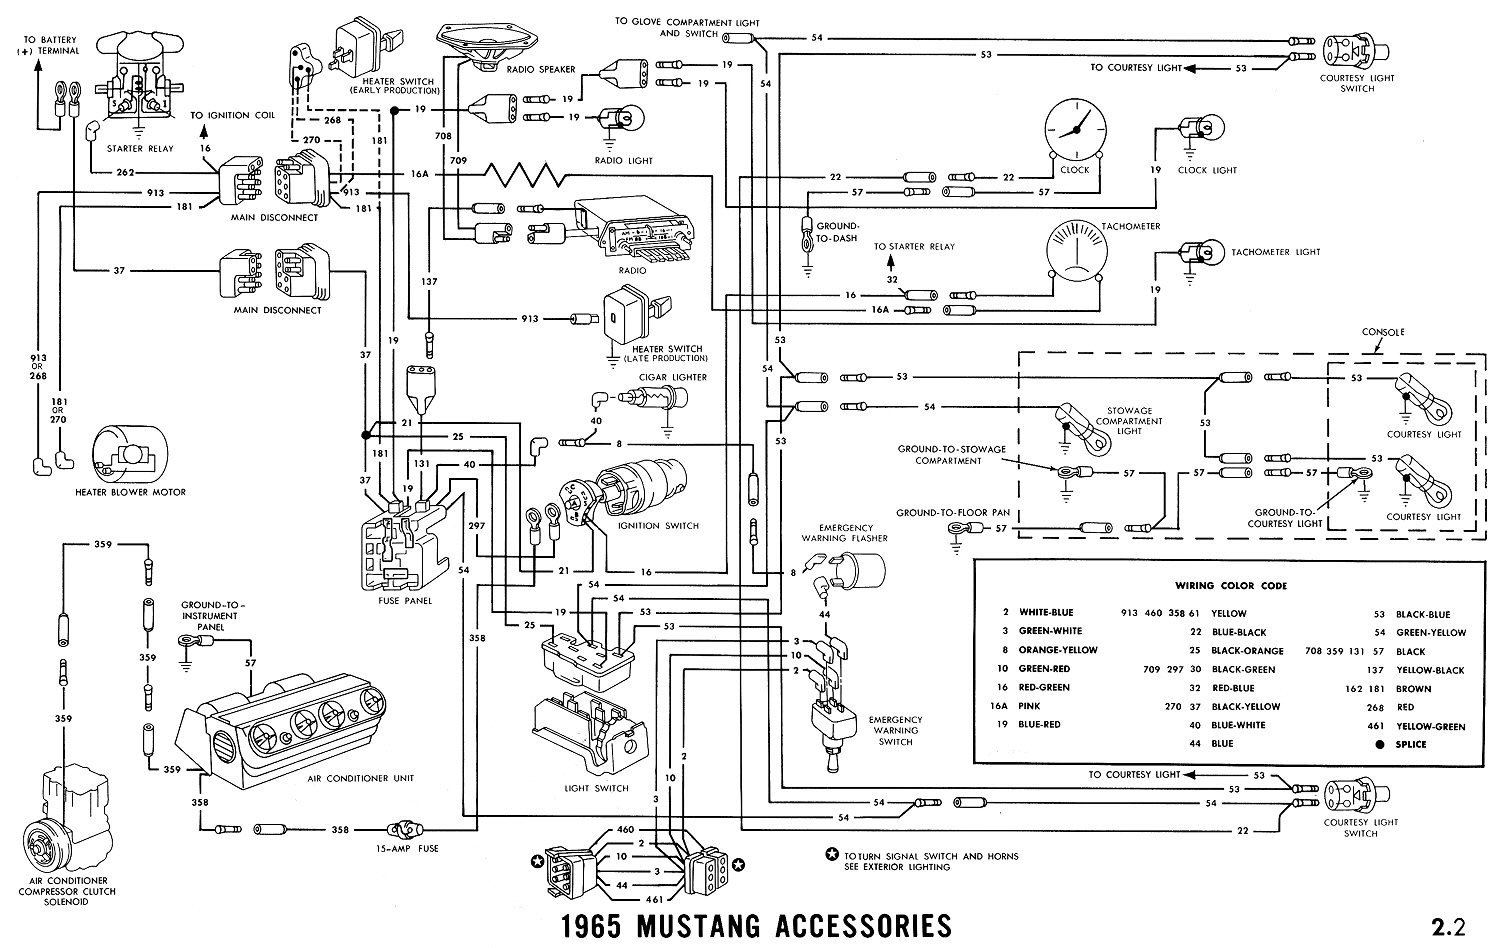 1965 mustang wiring diagrams average joe restoration rh  averagejoerestoration com 1967 ford mustang fuse box diagram 1967 Mustang  Ignition Switch Wiring ...